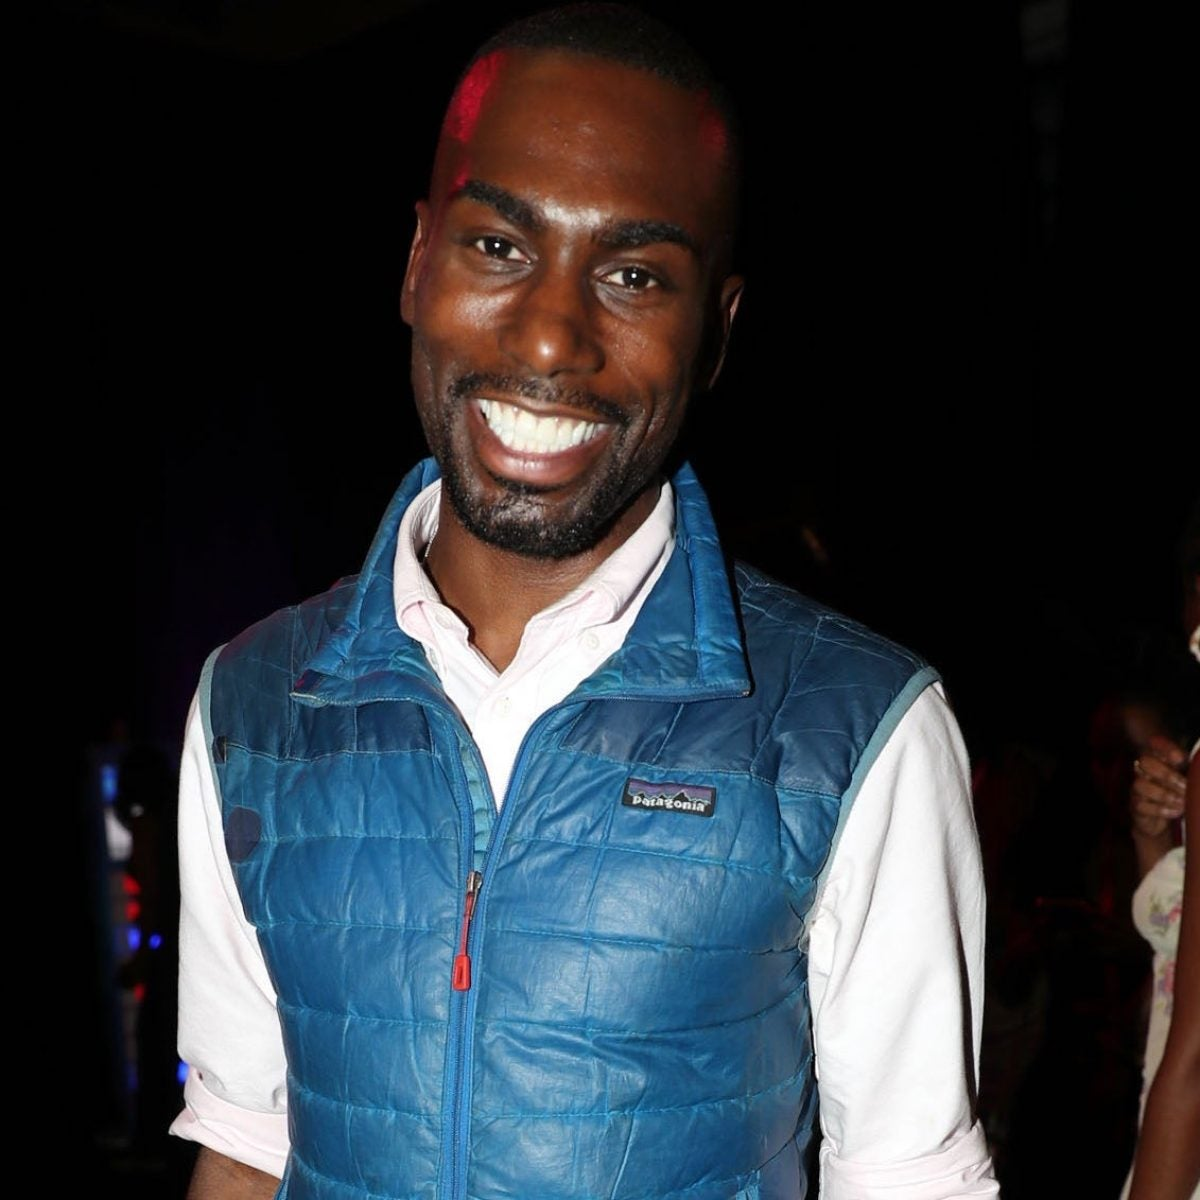 Activist DeRay Mckesson Reveals He Has COVID-19, Expects To 'Recover Fully'